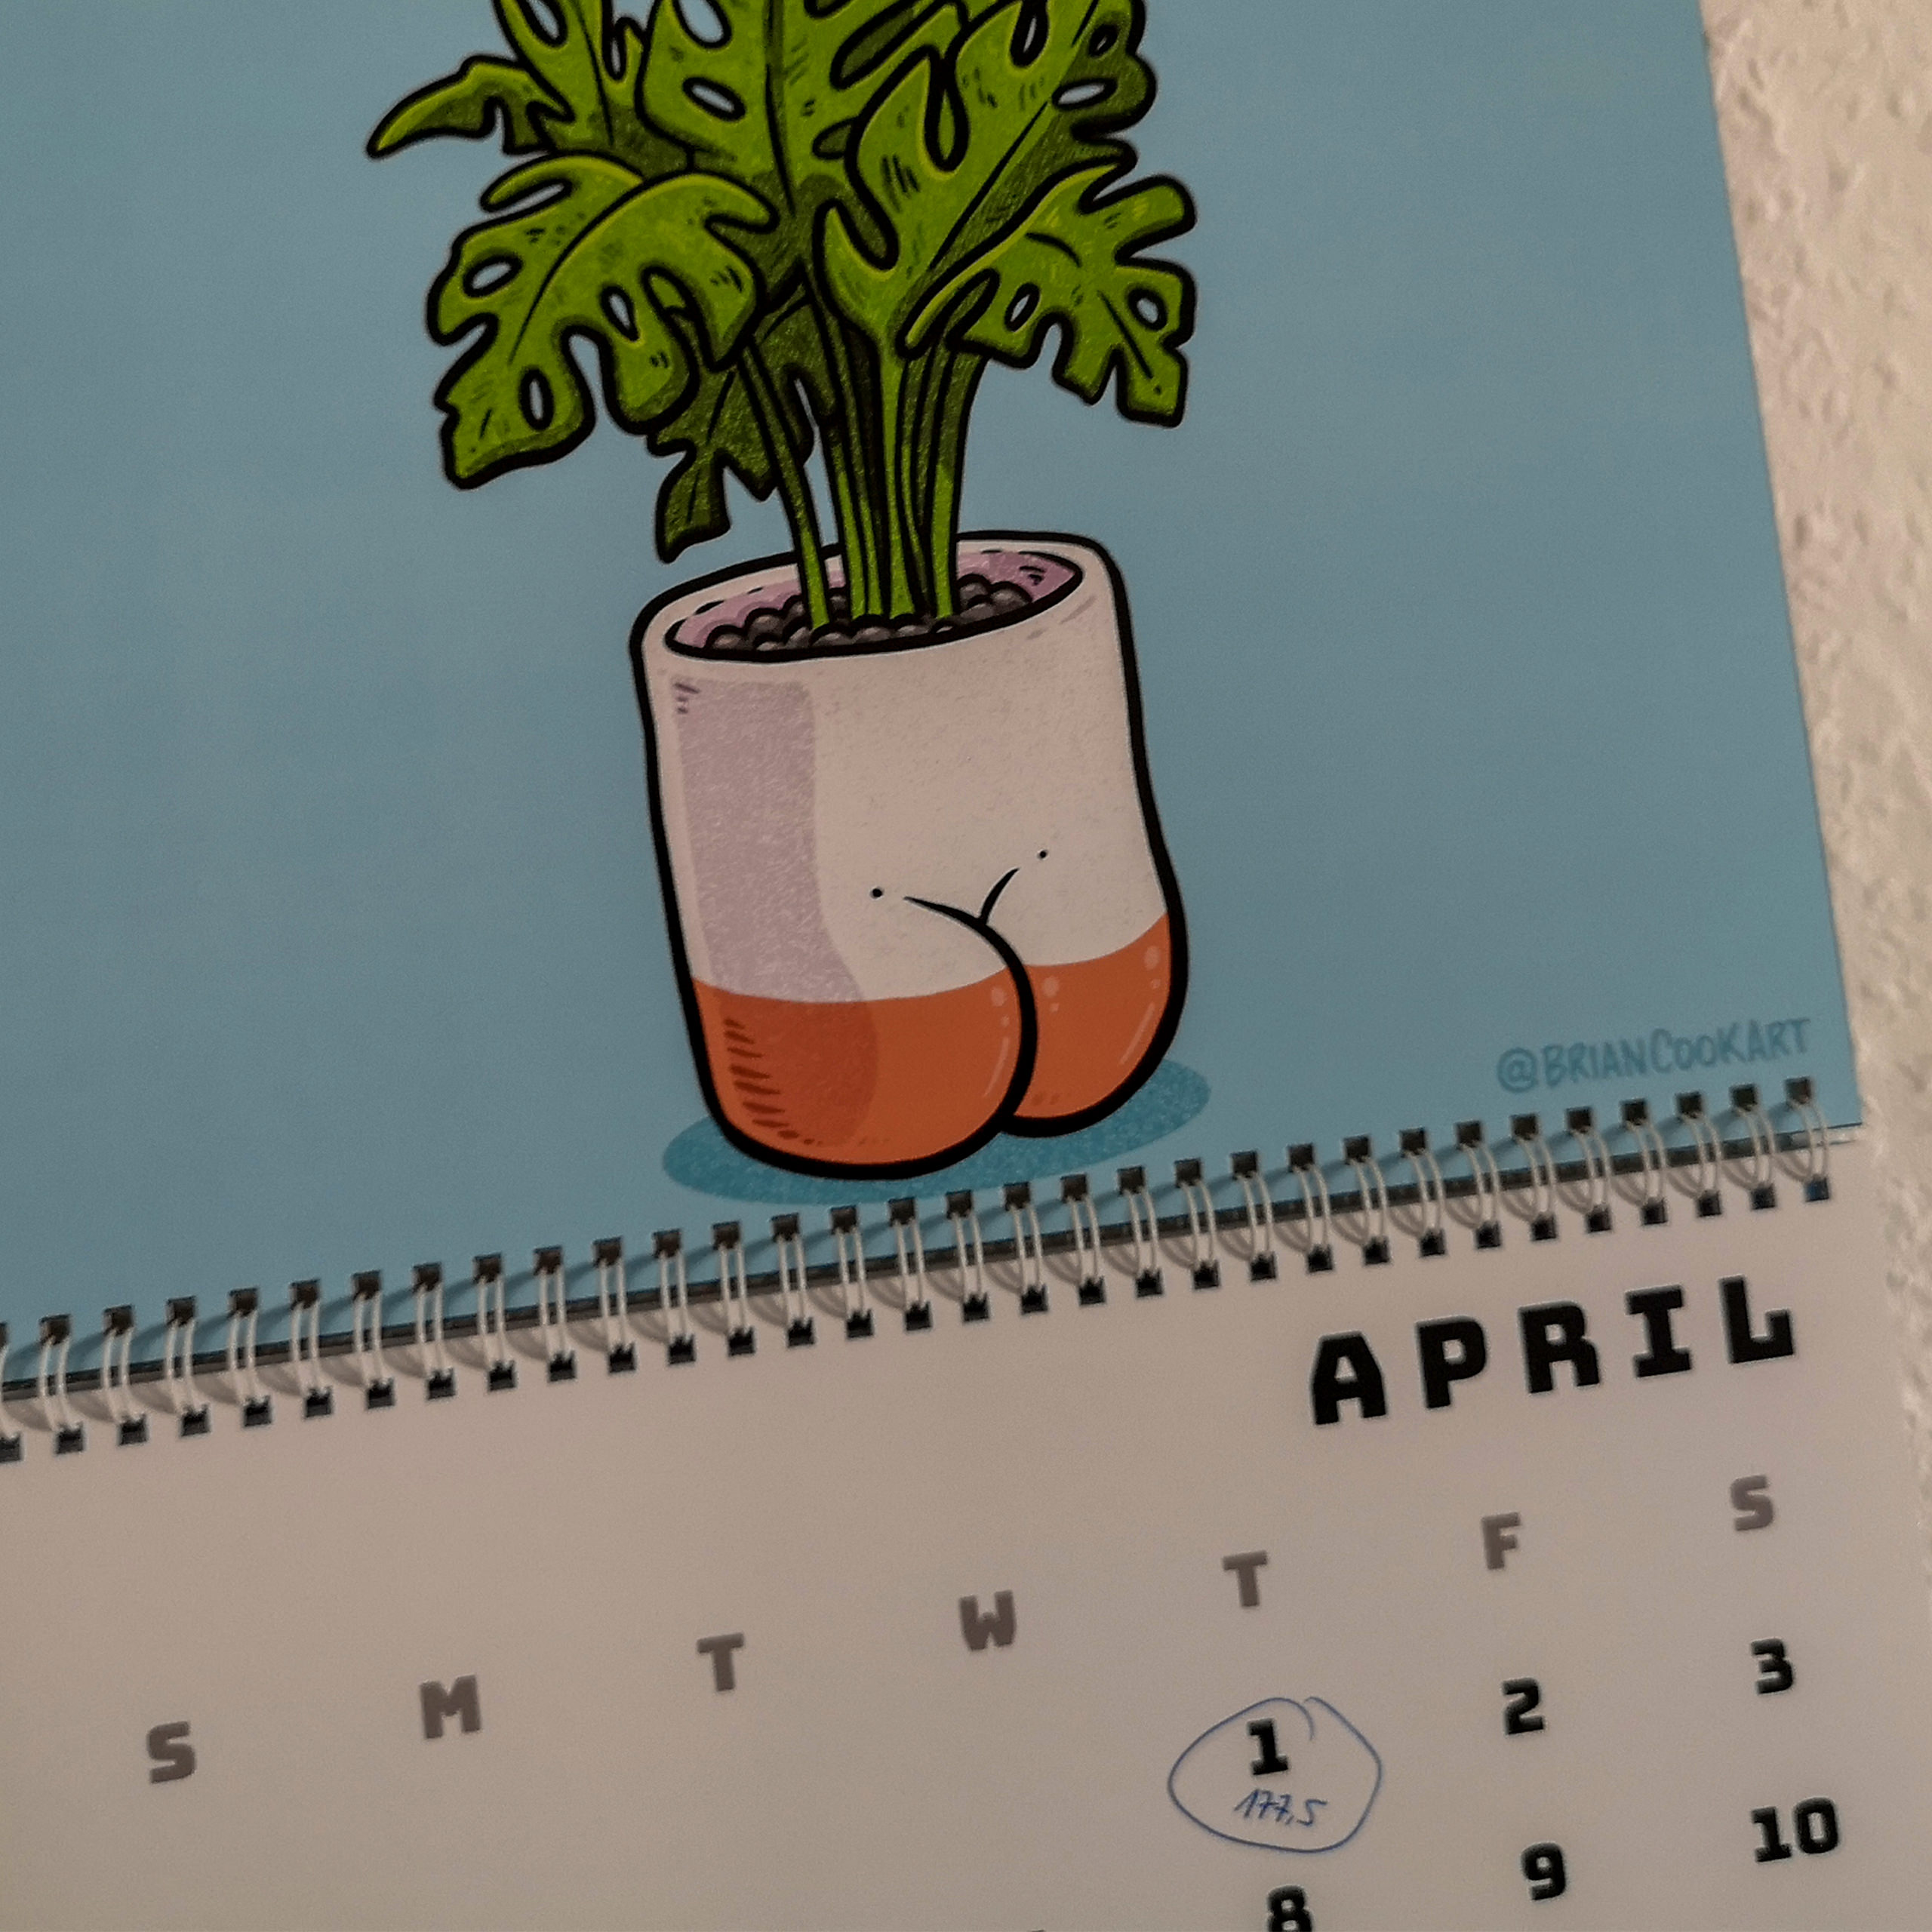 Kalender Butts on Things Brian Cook - Gewichtsupdate April 2021